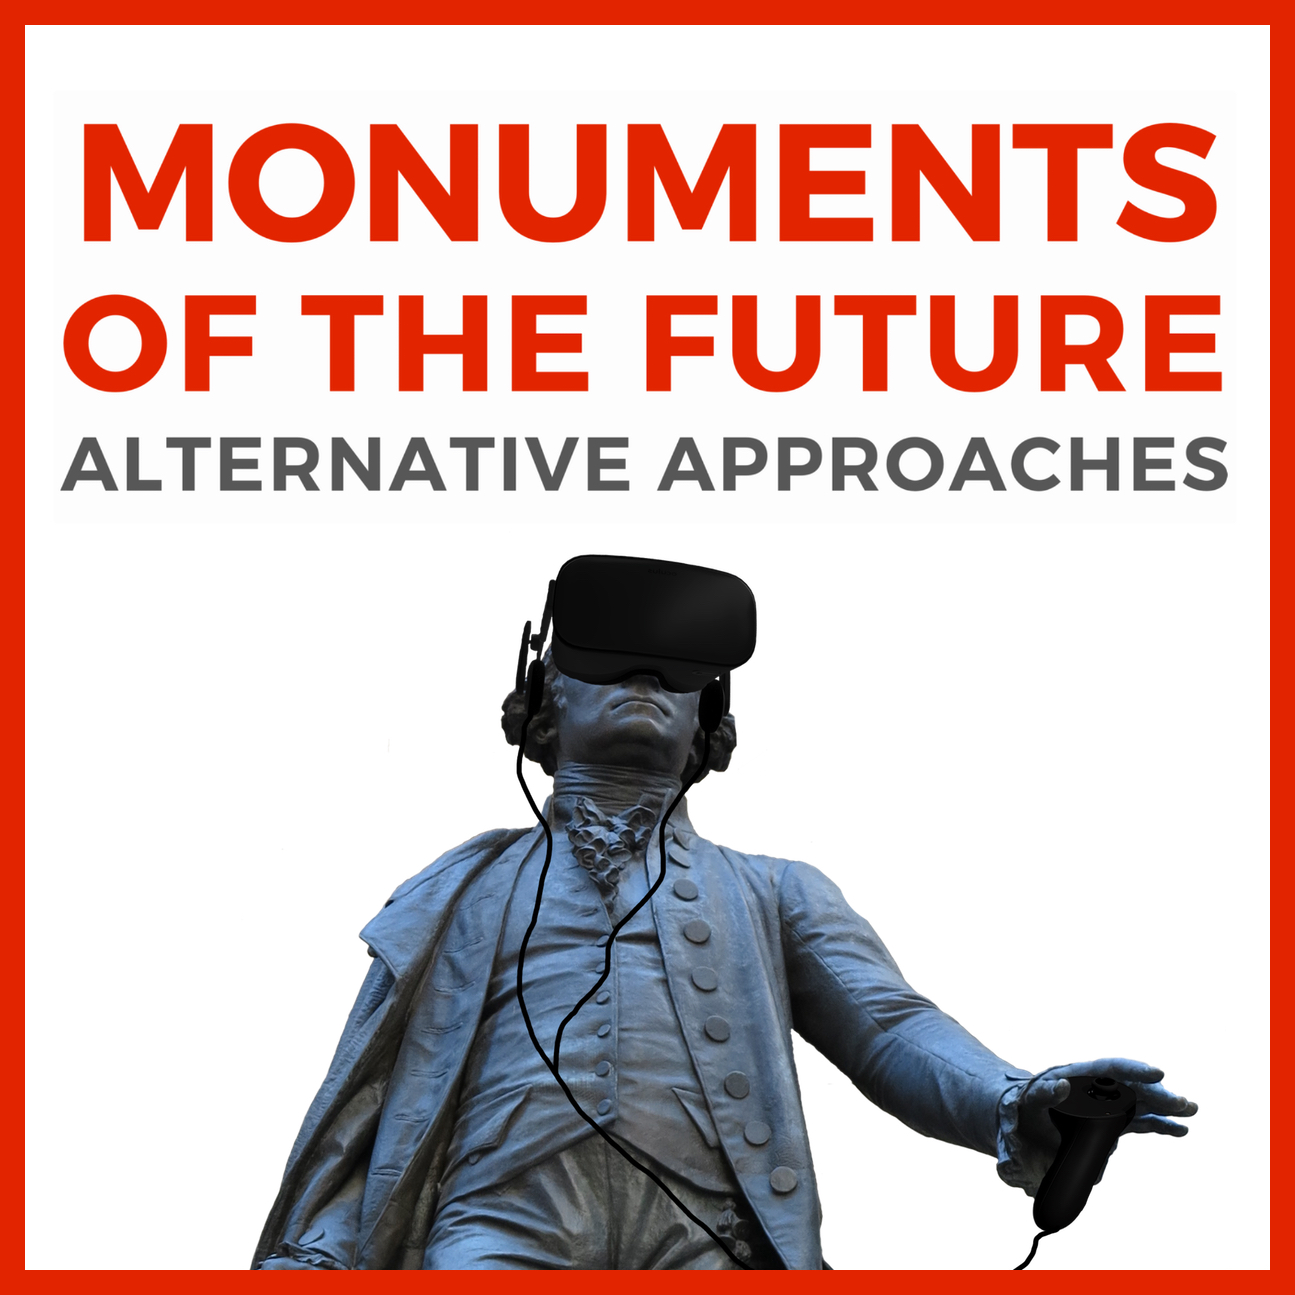 Monuments of the Future: Alternative Approaches